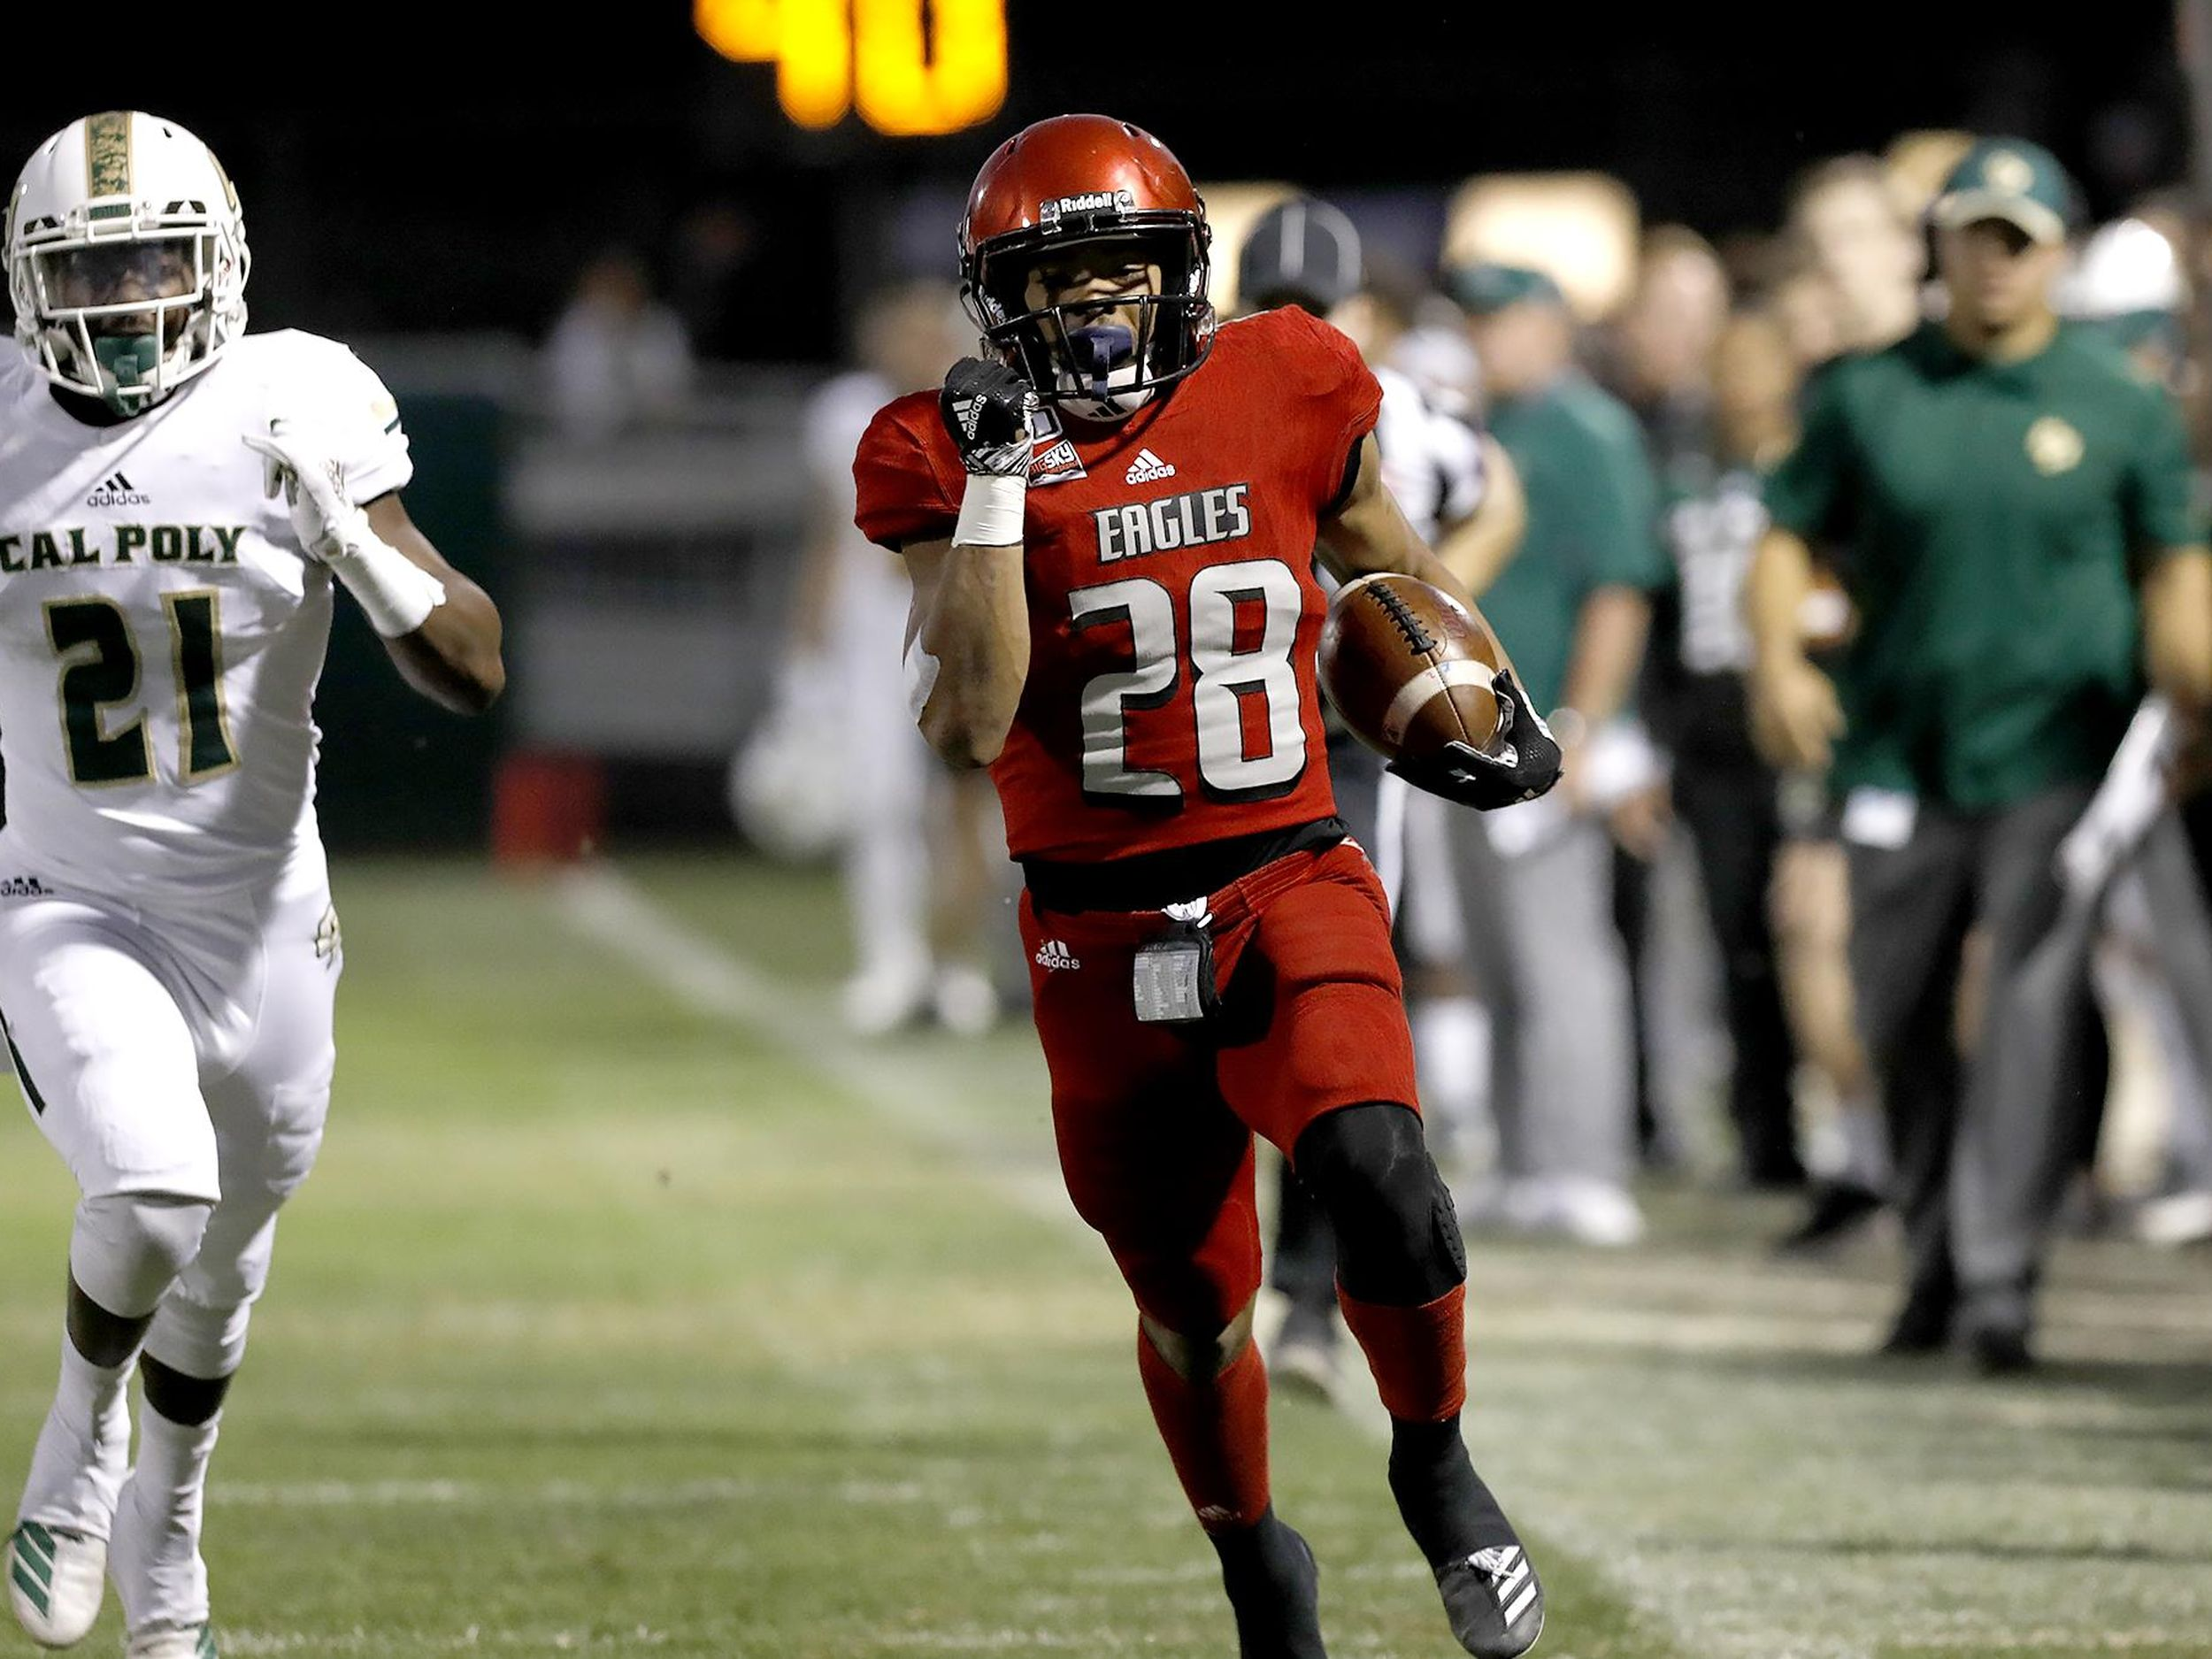 Eastern Washington Avoids Road Upset As Cal Poly Misses Winning Field Goal Attempt The Spokesman Review